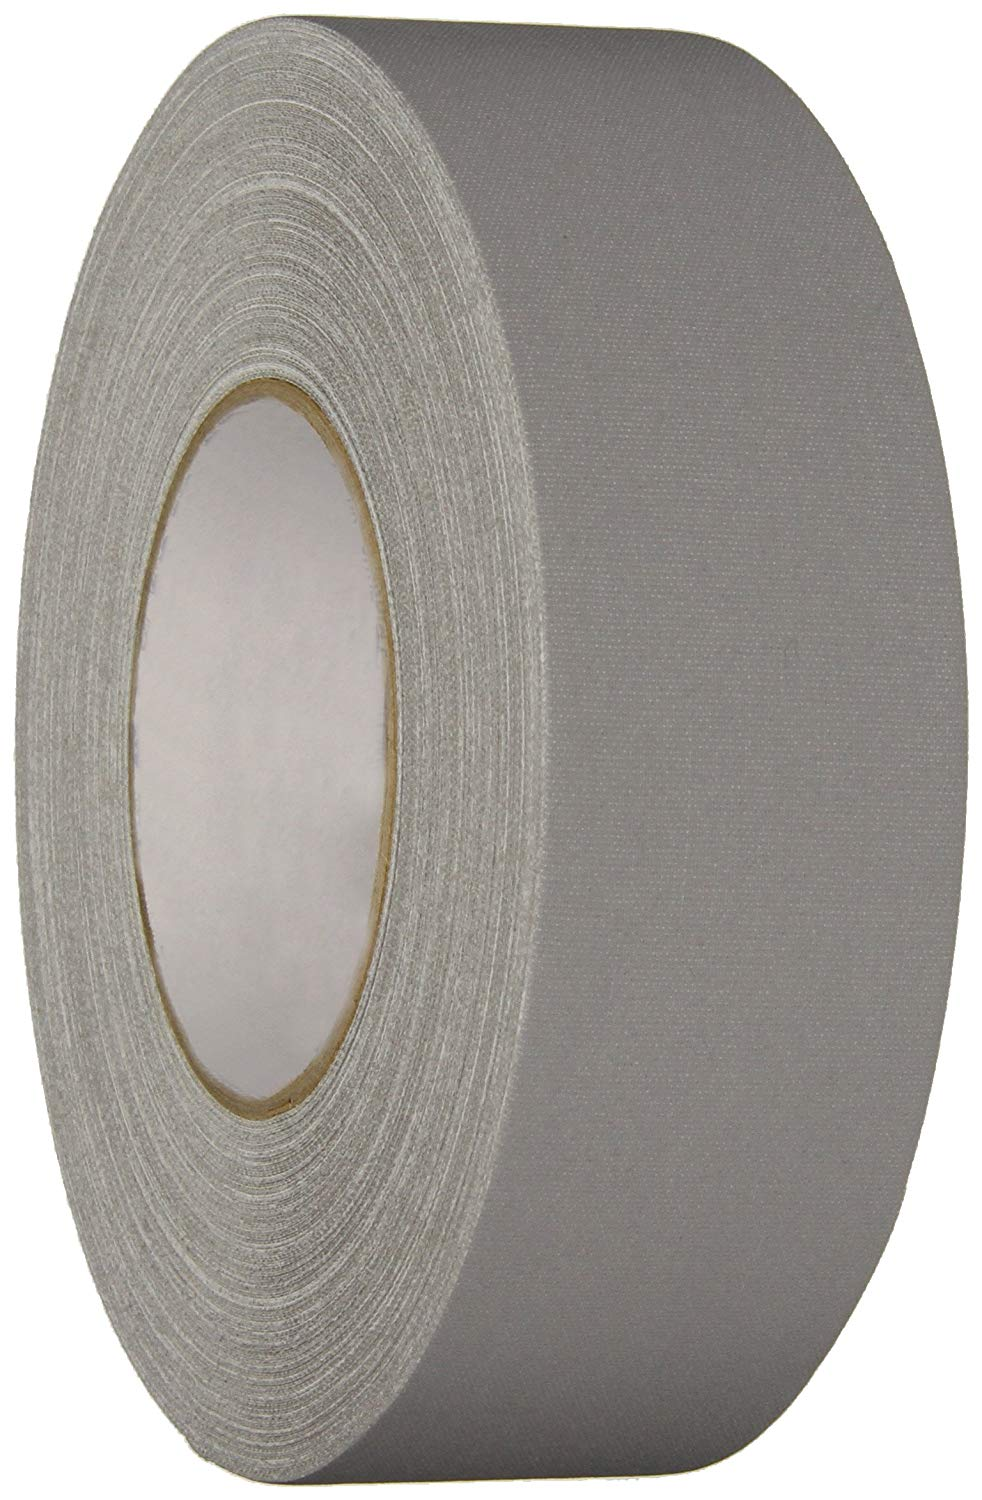 Polyken Vinyl Coated Cloth Premium Gaffer's Tape, 11.5 mil Thick, 50m Length, 48mm Width, Gray